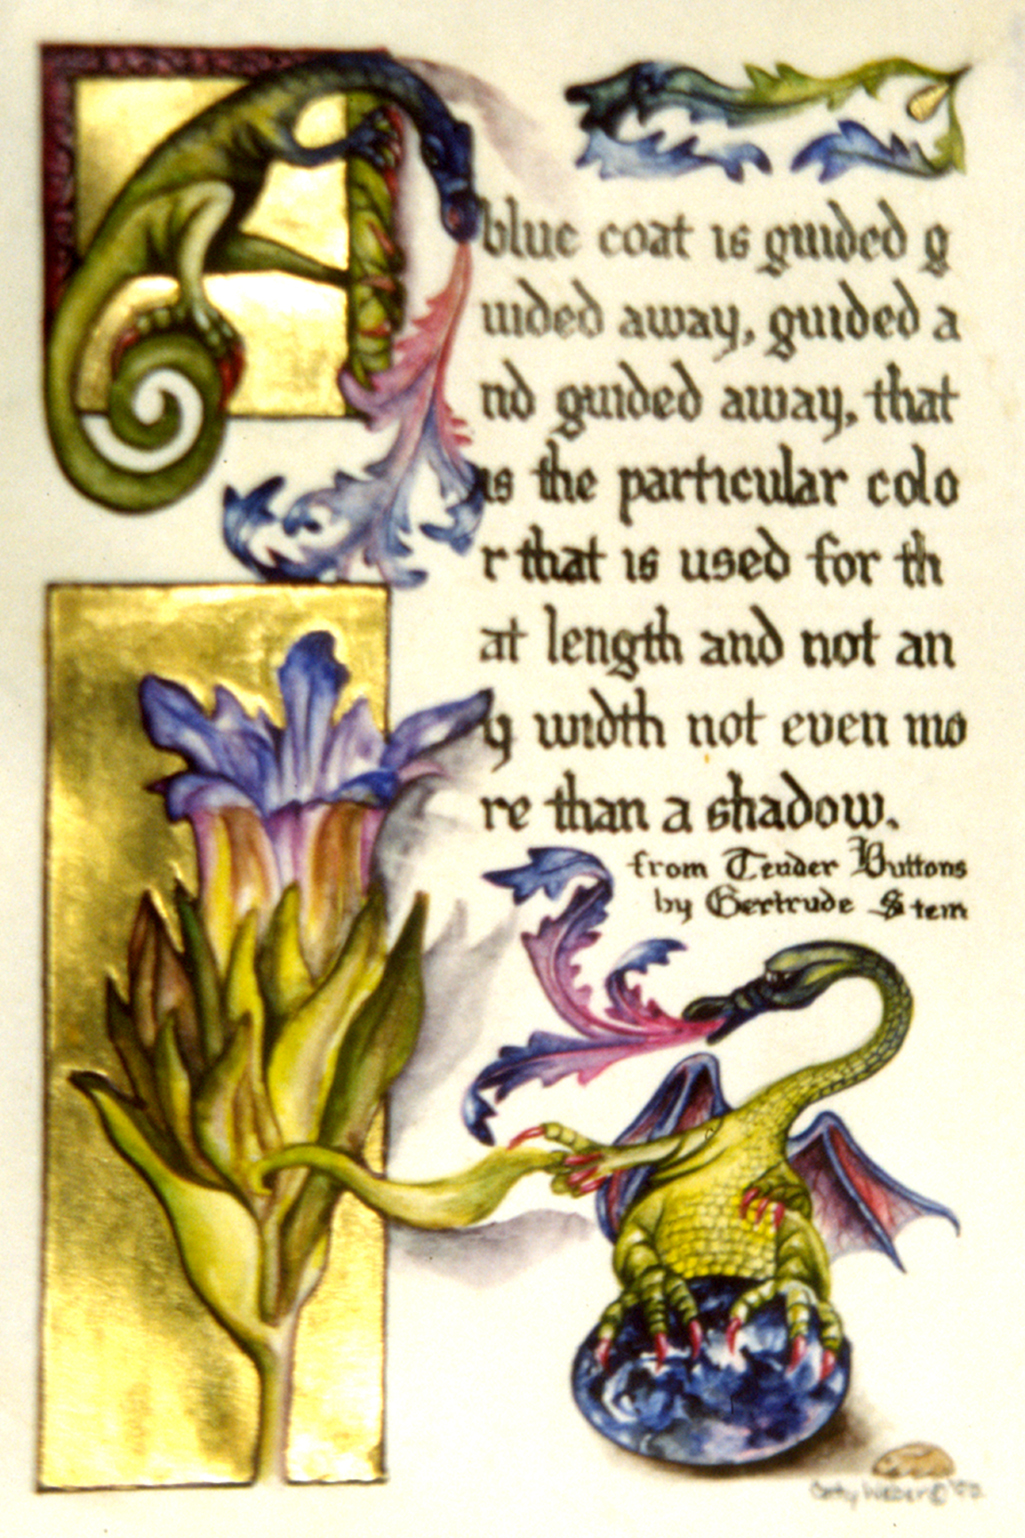 cathy weber - art - illumination - calligraphy - manuscript - watercolor - woman - rose - montana - gertrude stein - tender buttons